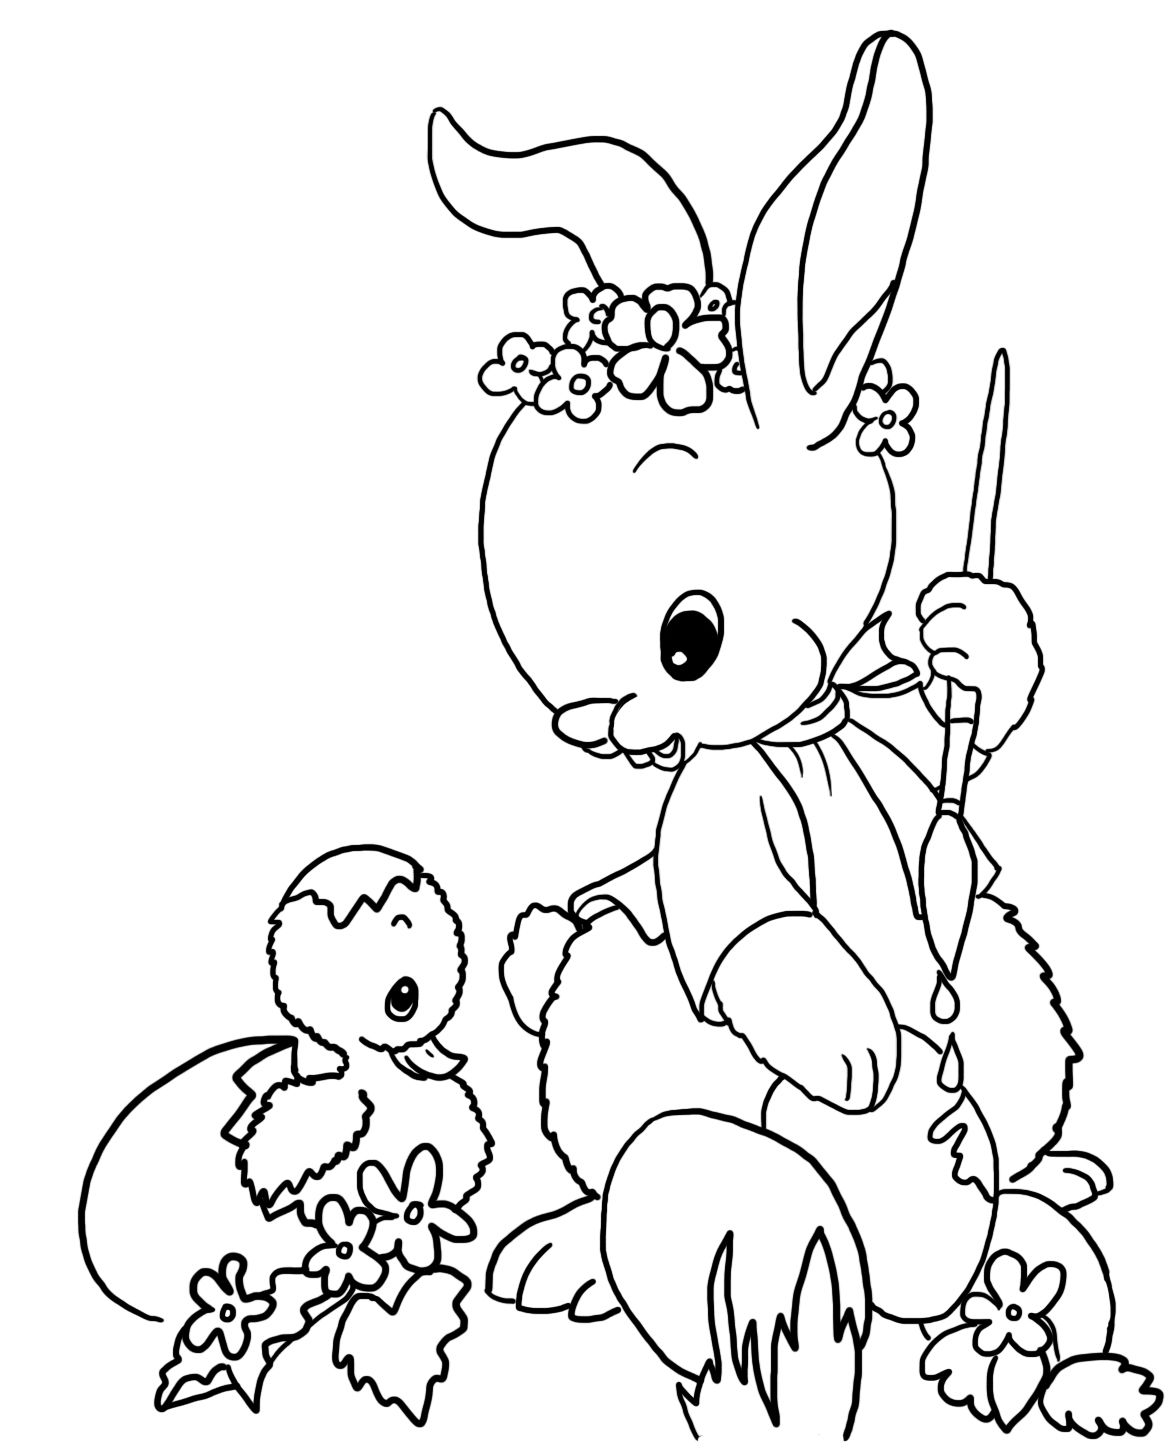 Easter bunny painting Easter eggs to color | Spring / Easter crafts ...